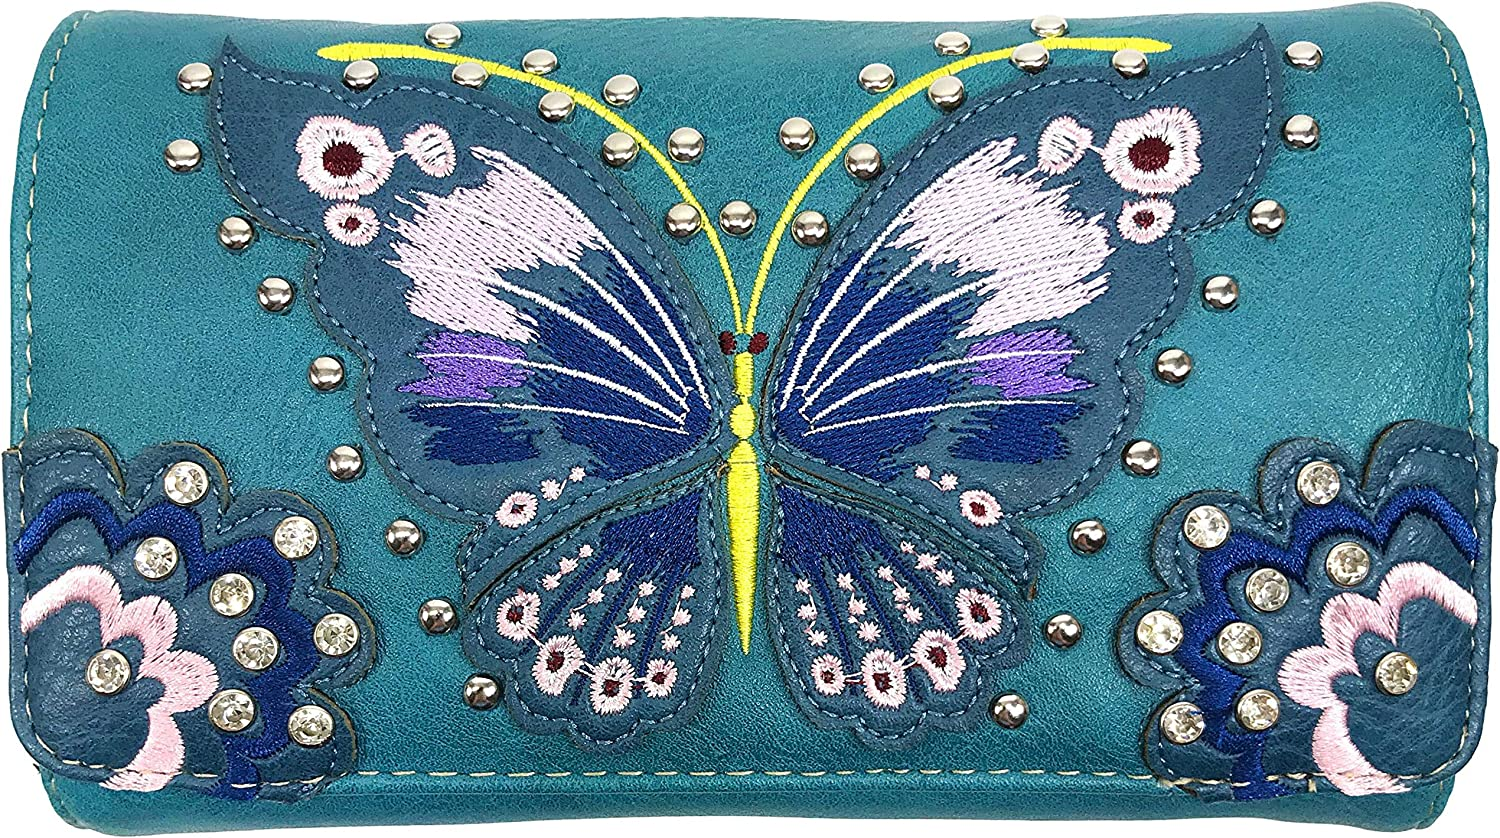 Zelris 2021 Peacock Butterfly Floral Wal Embroidery Crossbody Reservation Trifold